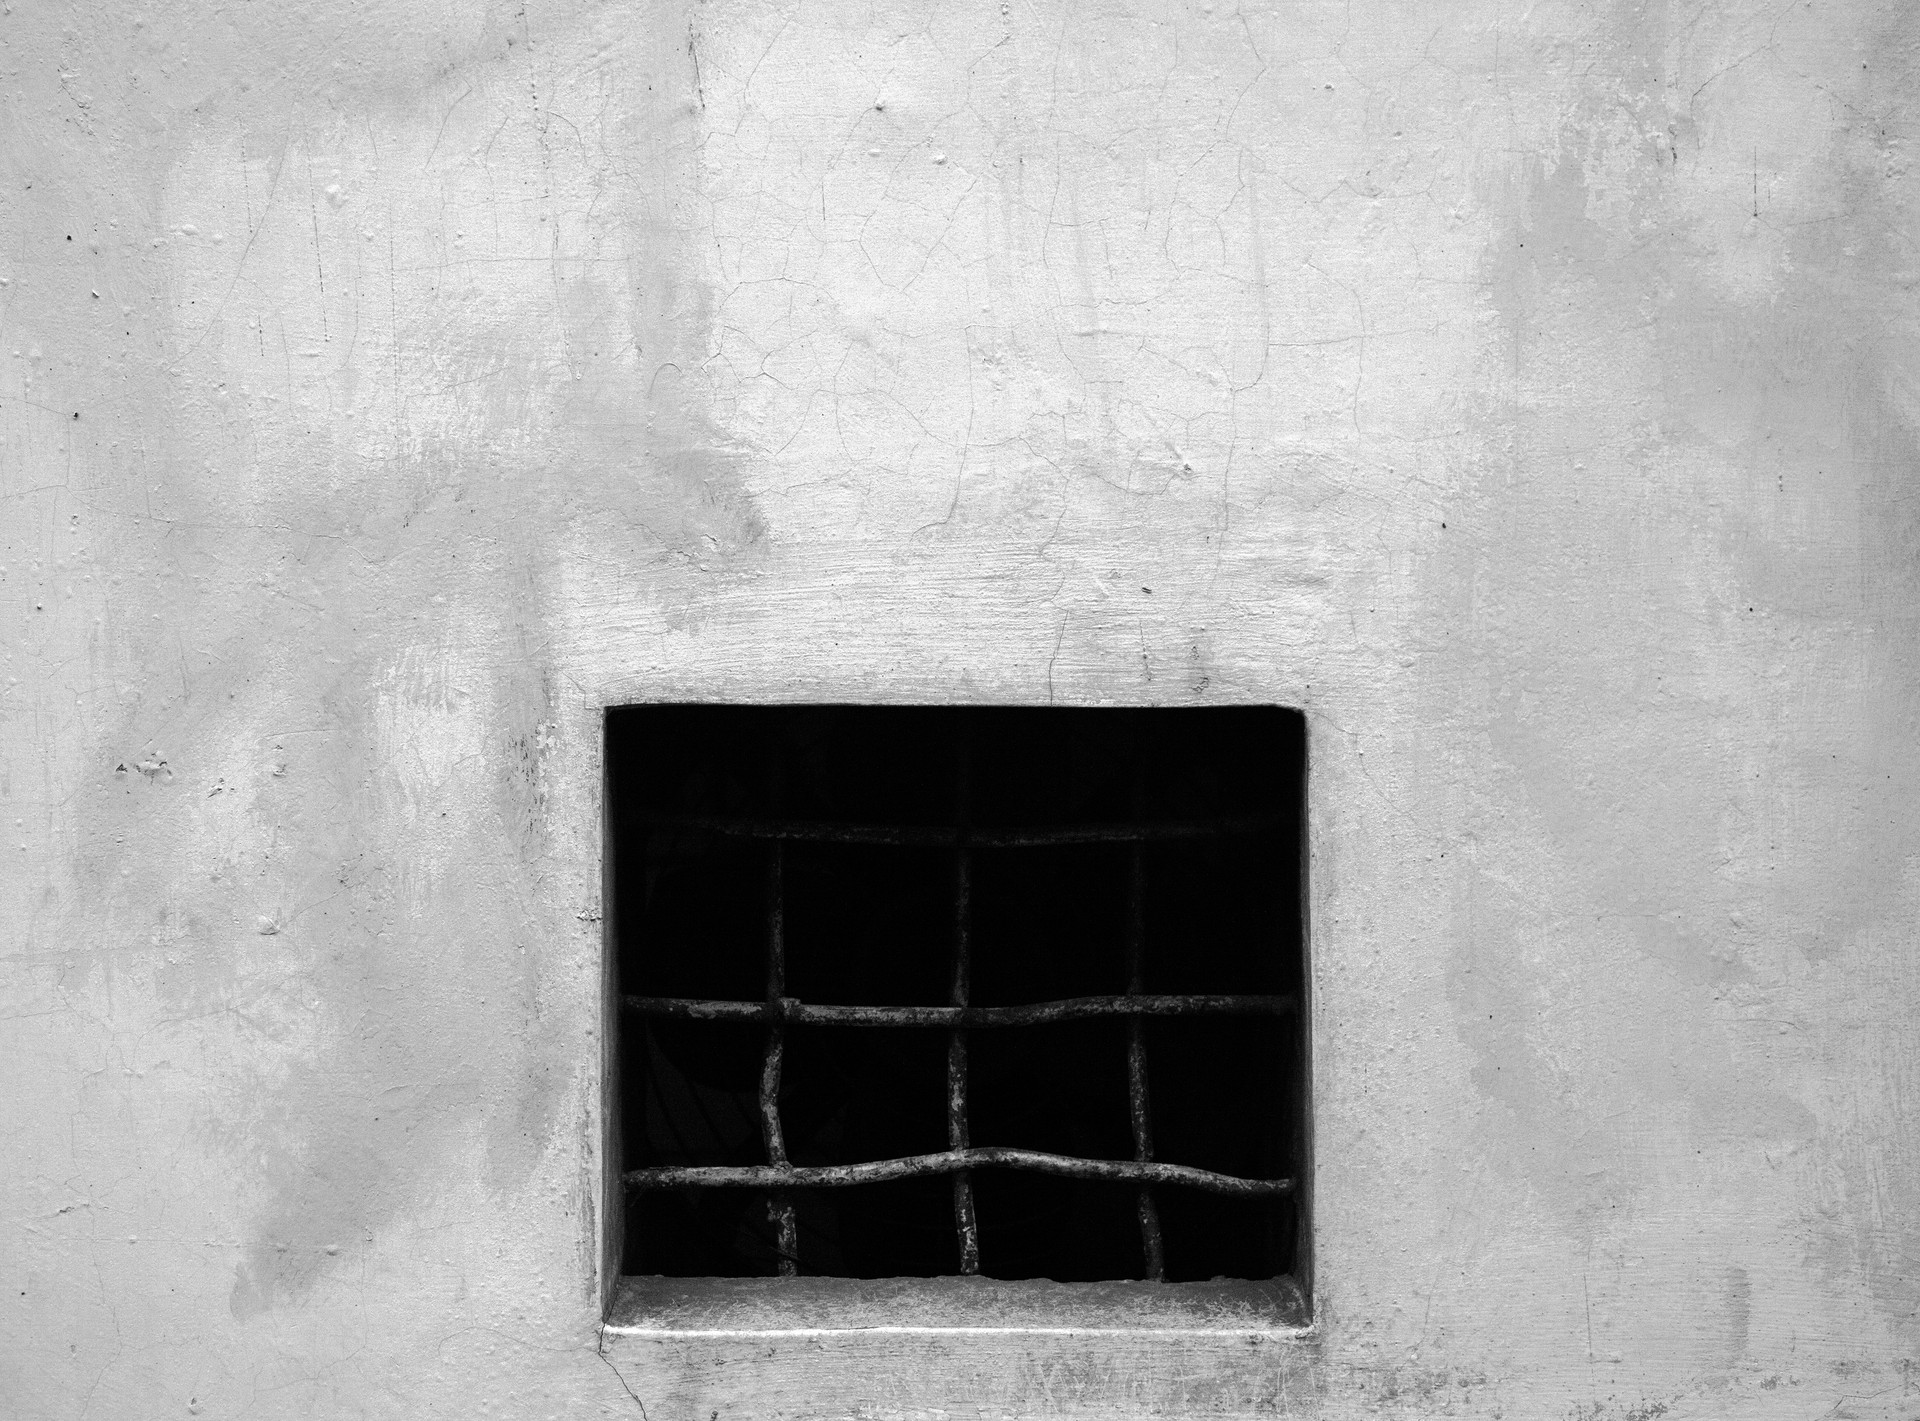 Another Dark Hole In a Wall